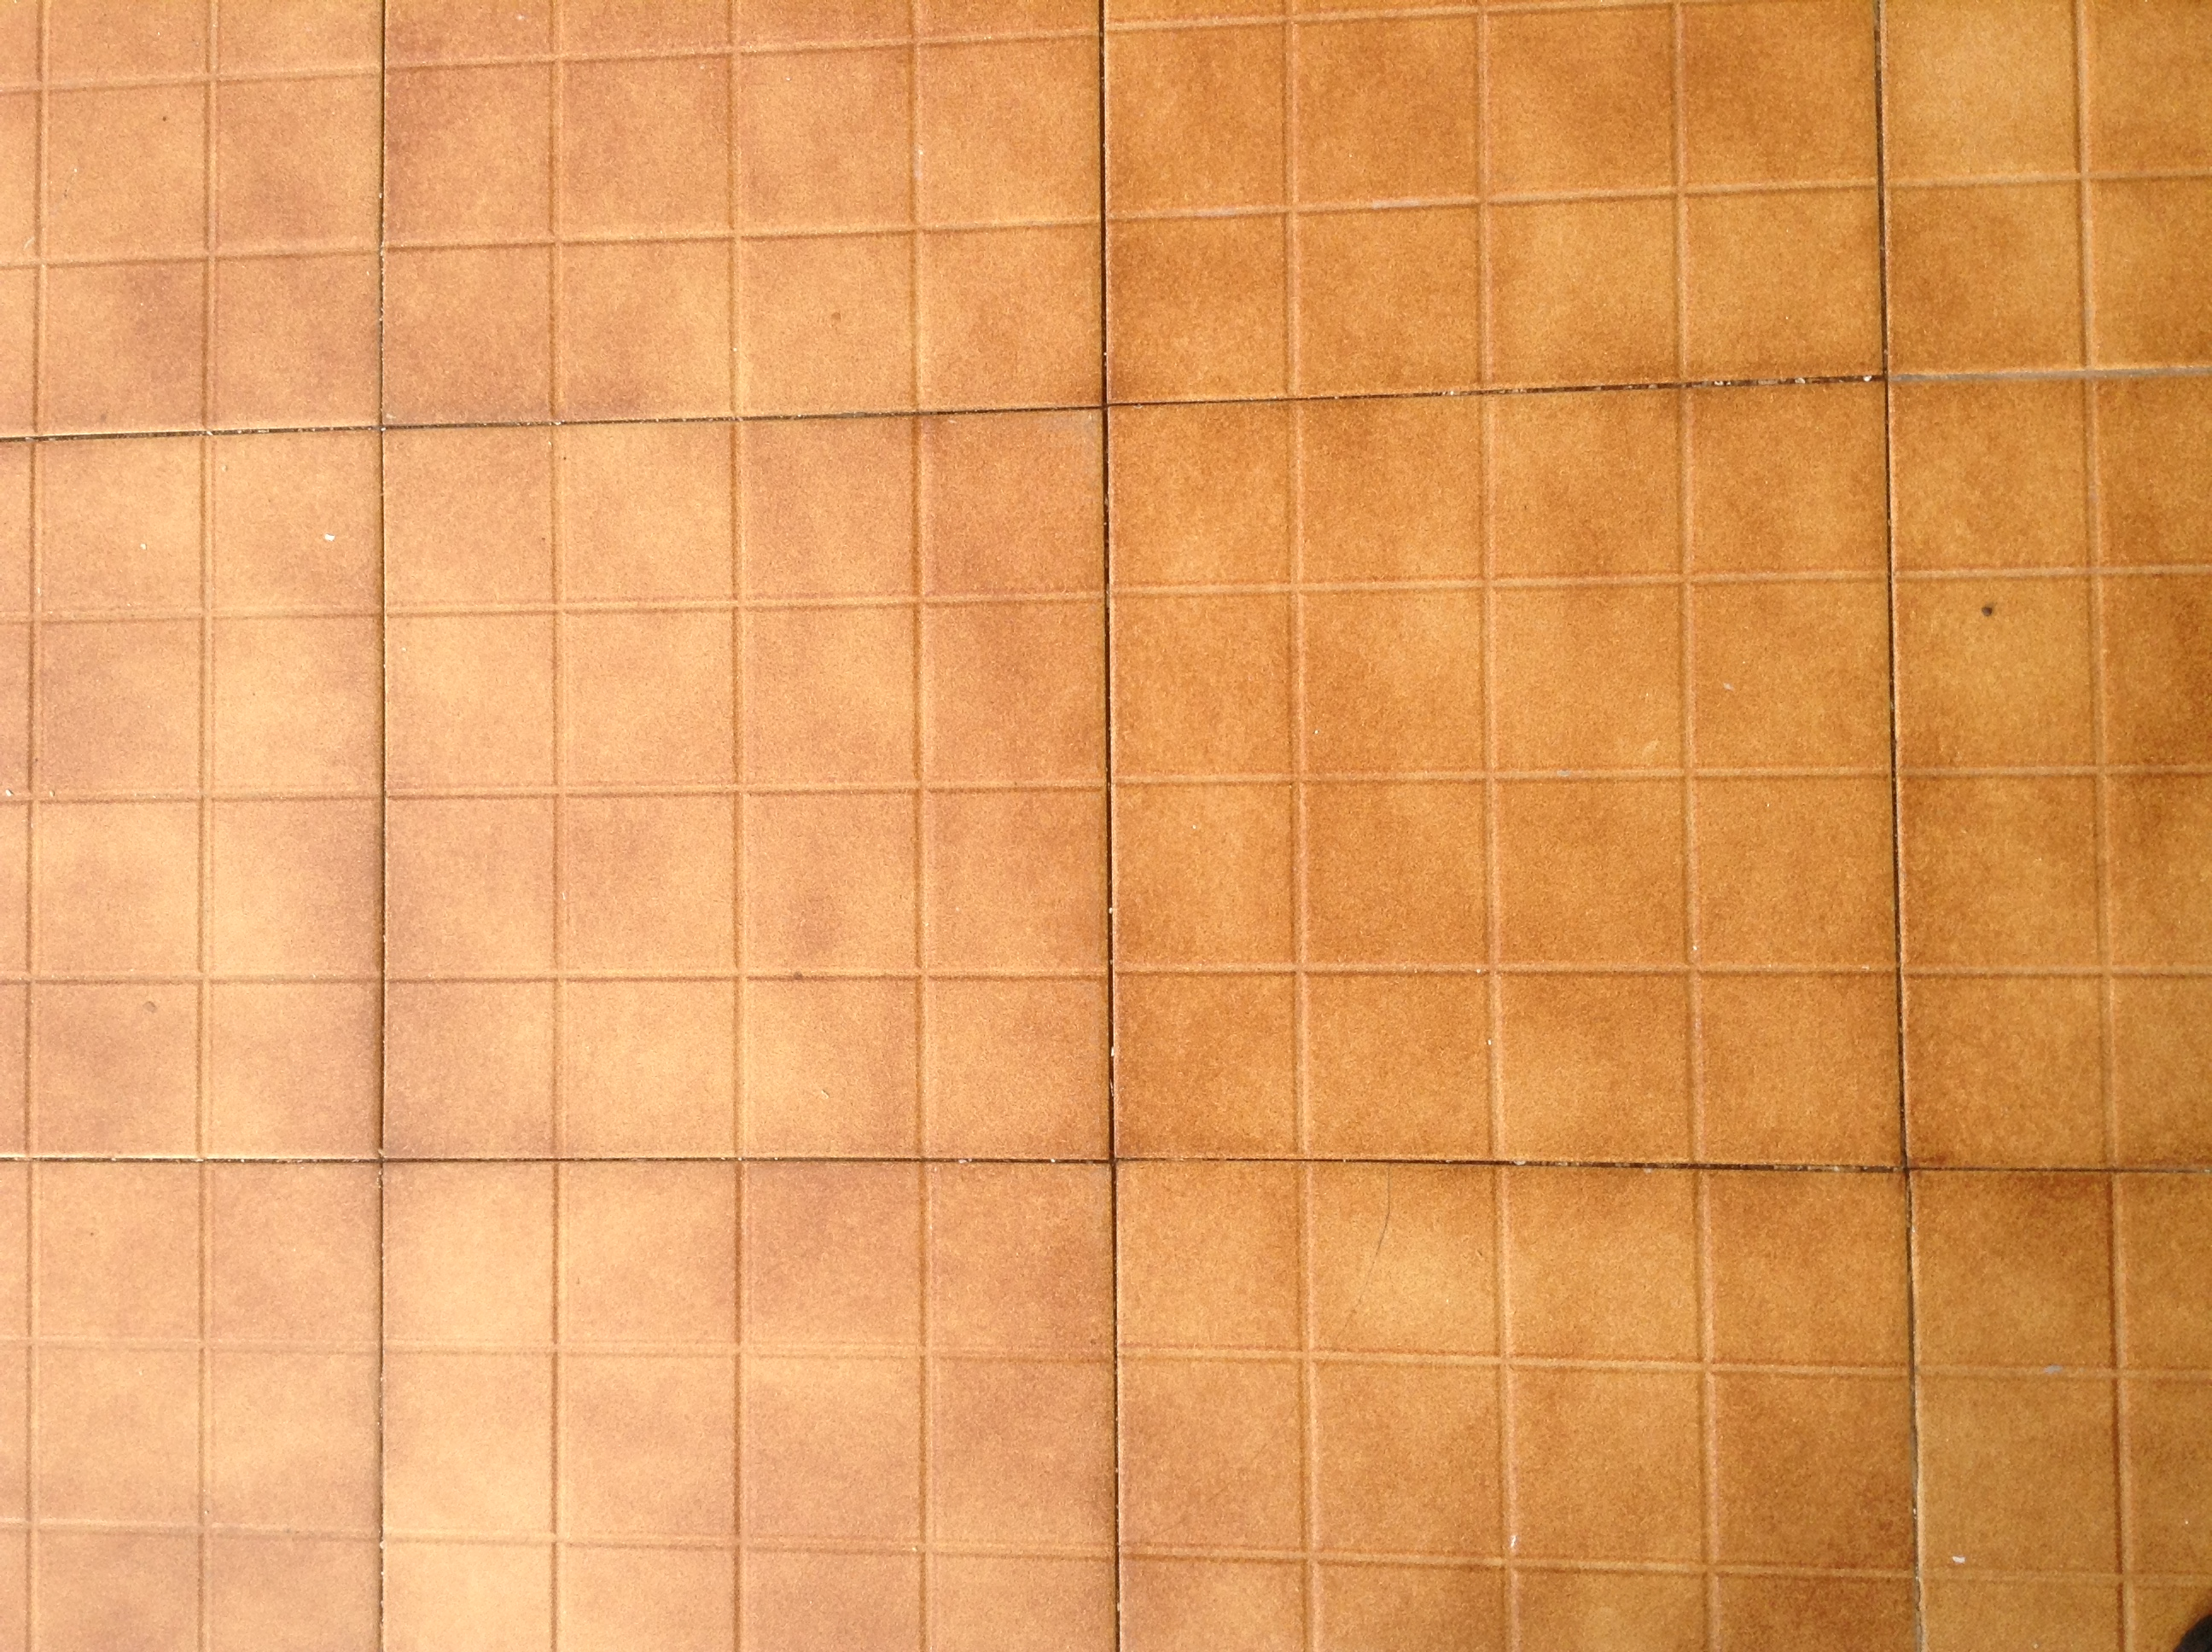 Wanted: Floor tiles - Buy and sell items in Puerto del Carmen ...